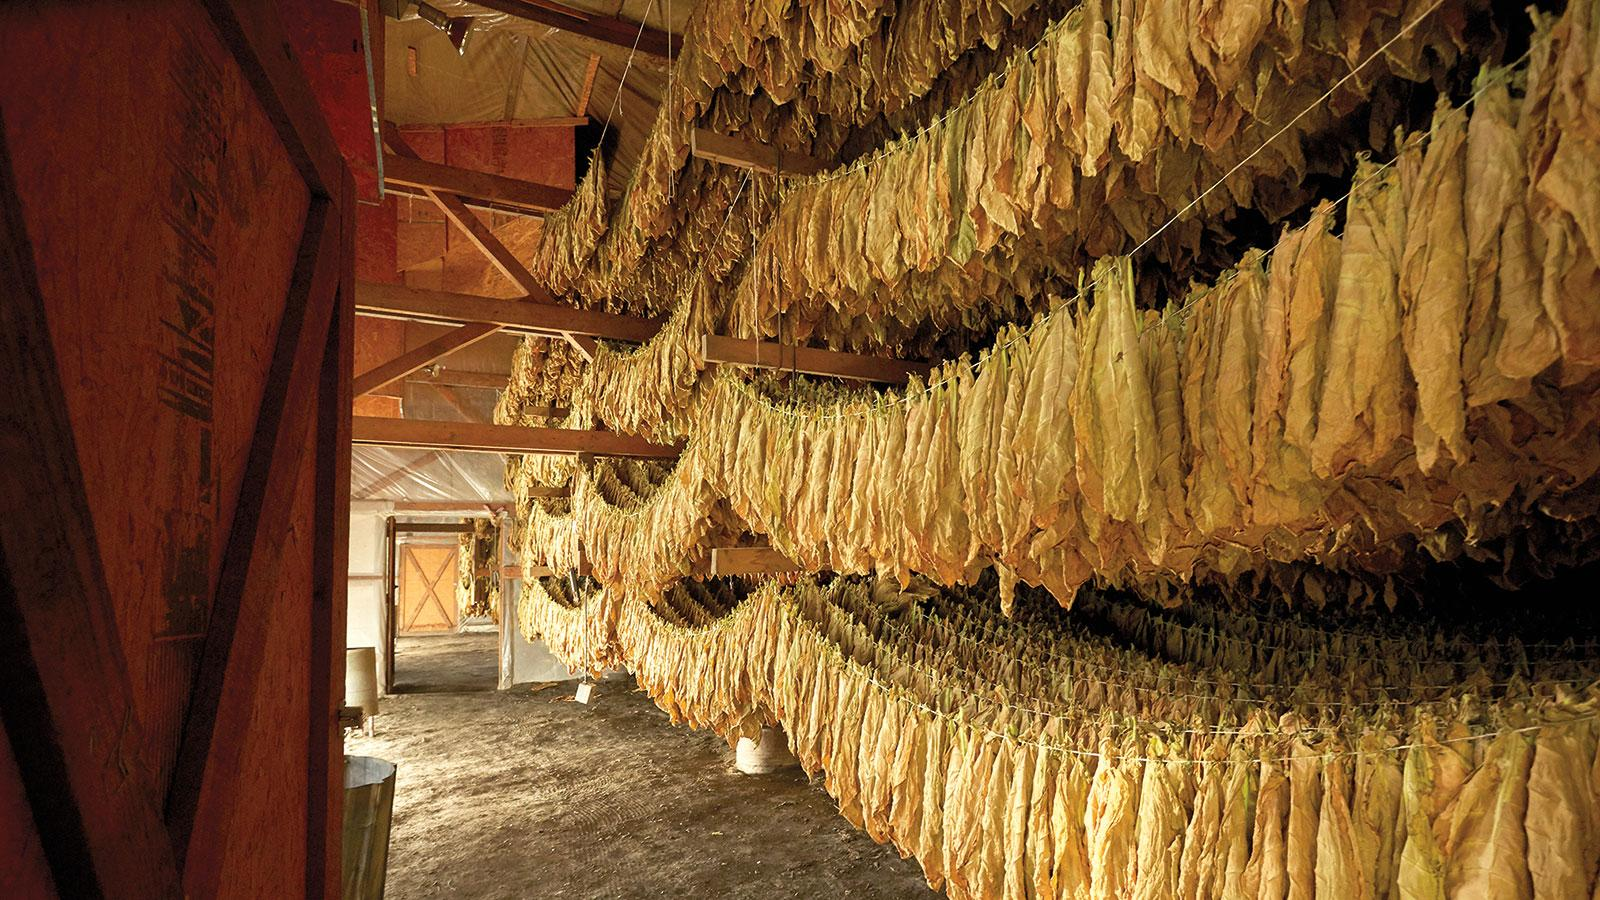 Rows and rows of shade tobacco leaves hang in a barn on the S. Arnold & Co. farm. The leaves will cure in the barn for at least 40 days, developing a golden brown color.